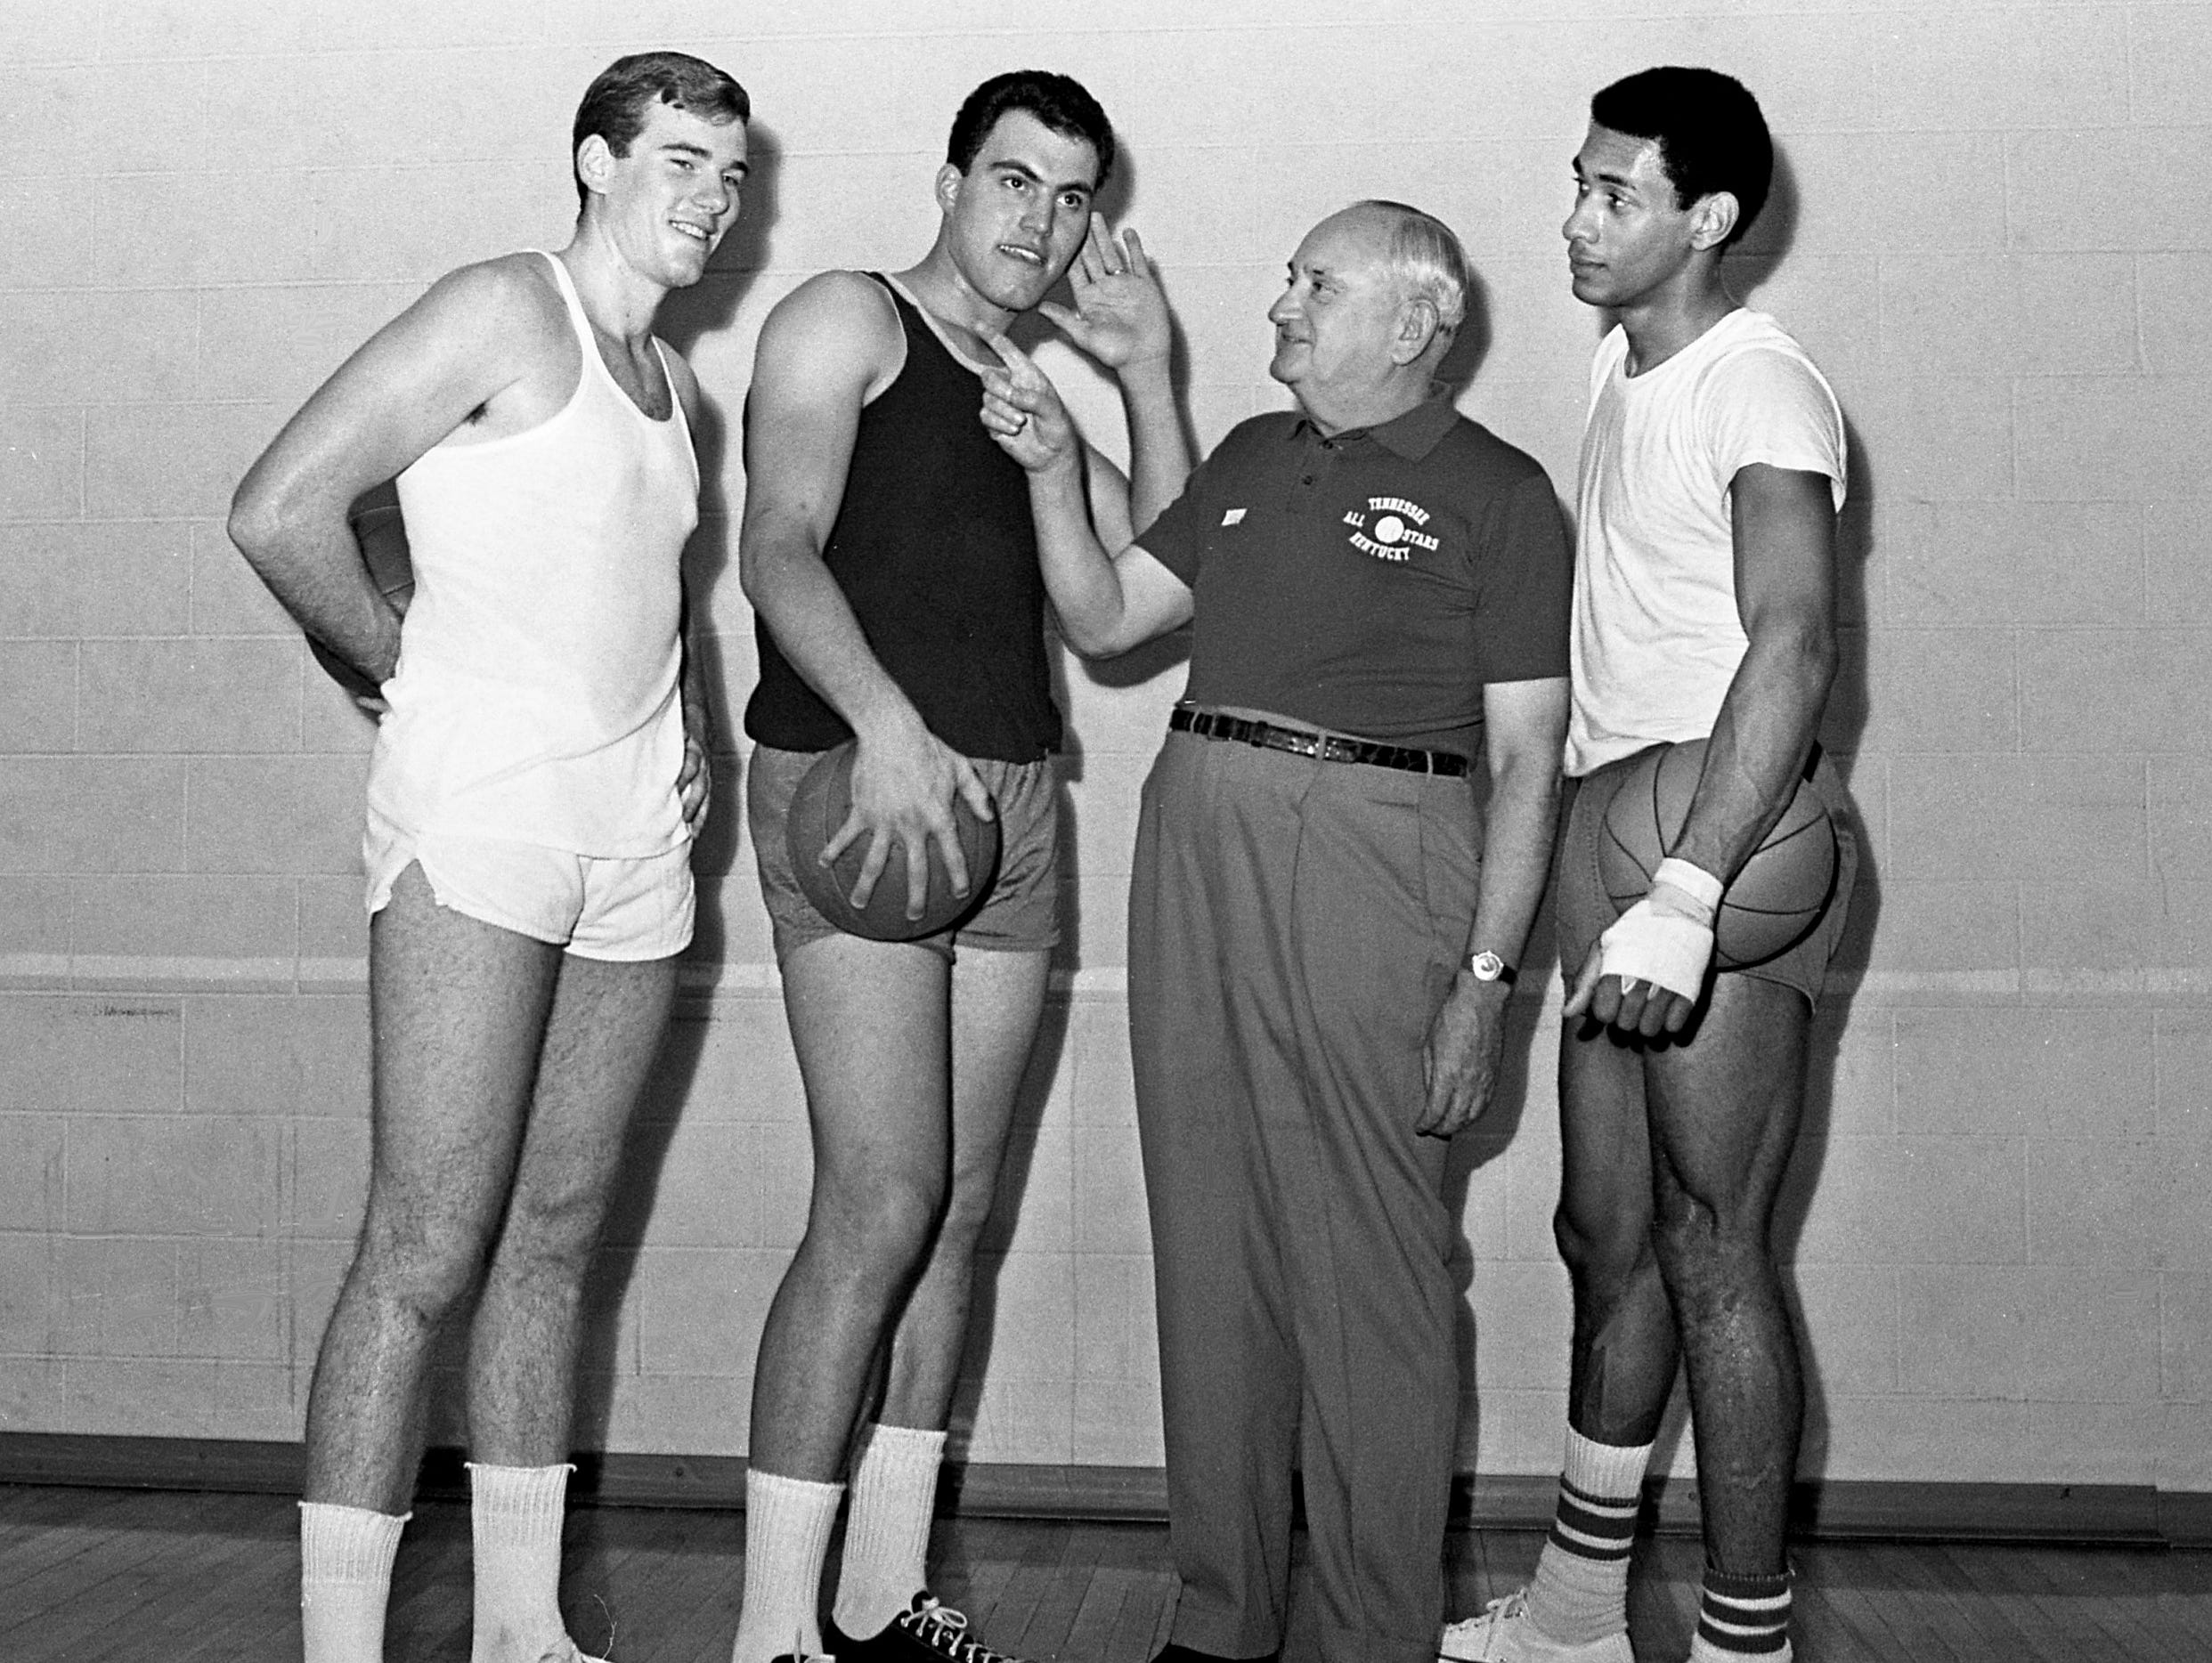 """Now you're coming through loud and clear,"" Dick Cunningham, second from left, of Murray State appears to be thinking as he cups his ear to hear what Kentucky famed coach Adolph Rupp has to say during practice April 12, 1968. Looking on are Thad Jaracz, left, of Kentucky and Greg Smith, right, of Western Kentucky as the Kentucky senior college stars get ready to play the Tennessee senior All-Star team the next day at Memorial Gym."